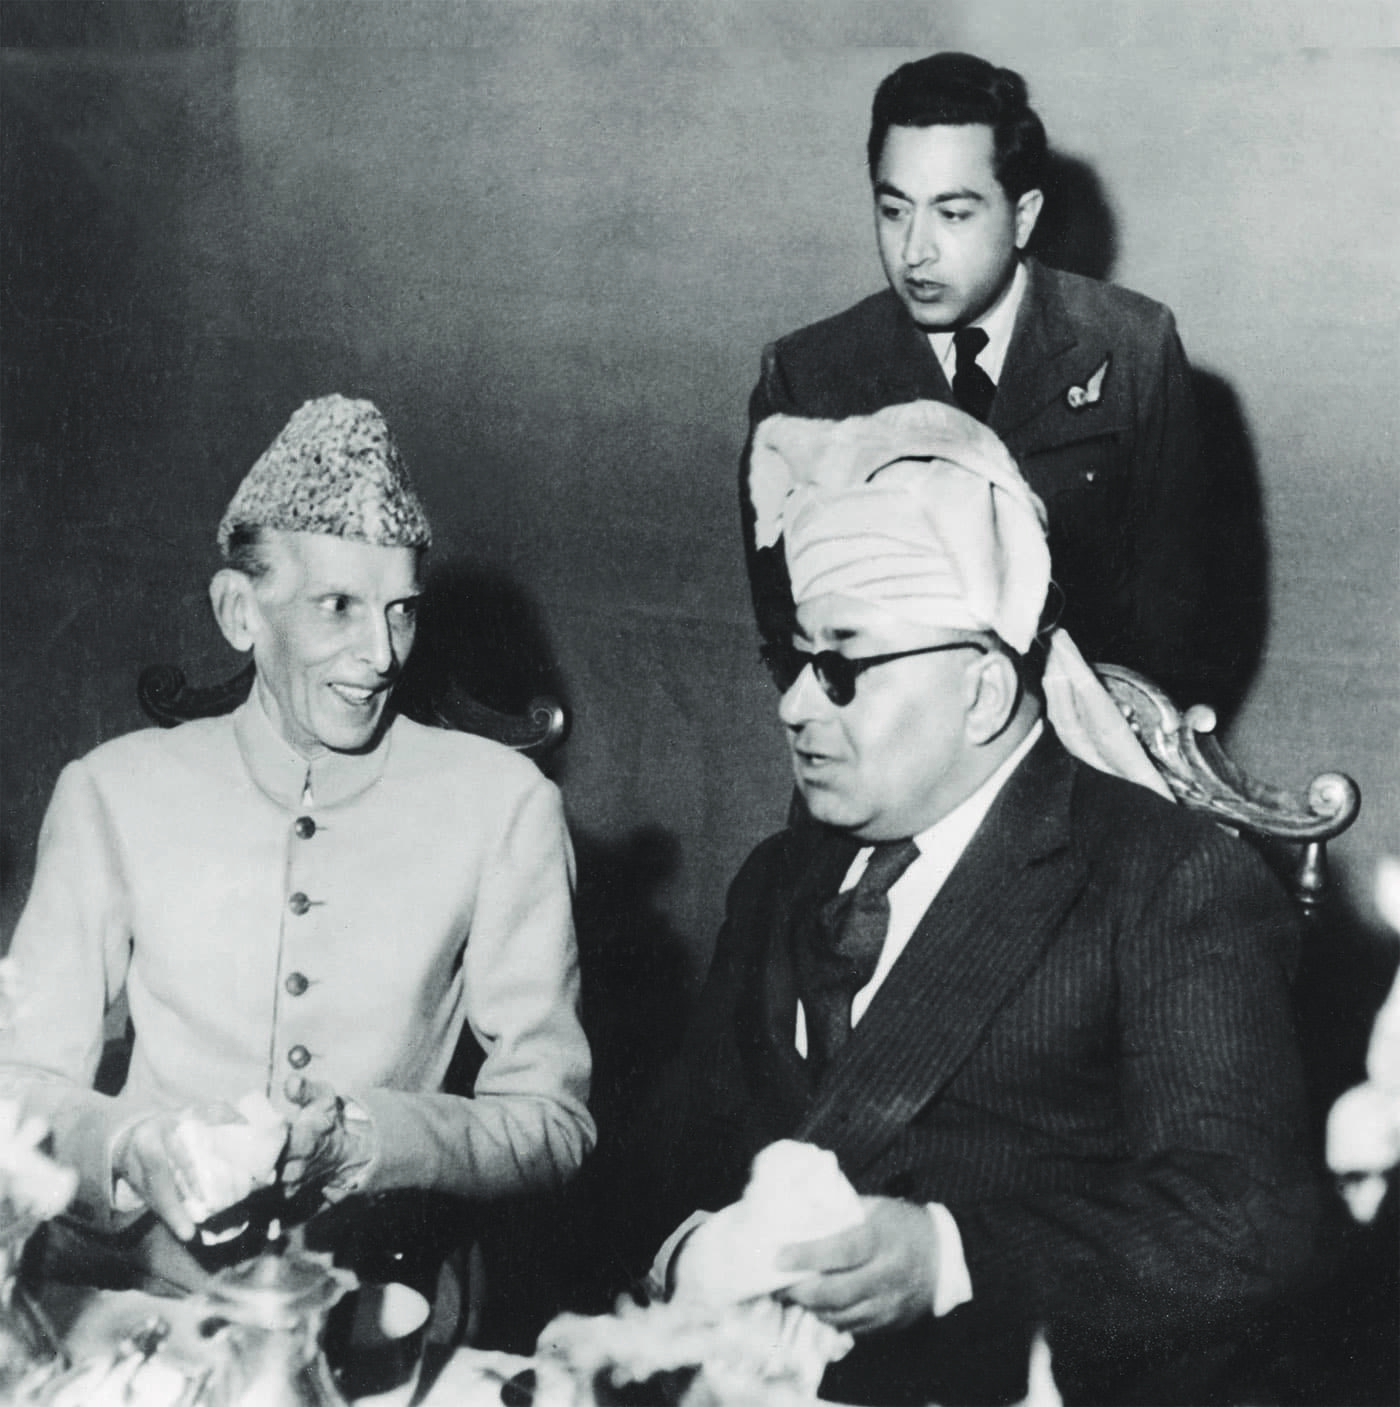 Quaid-i-Azam Mohammad Ali Jinnah and Mir Ahmad Yar Khan, the Khan of Kalat, on October 15, 1945. — Courtesy Khan of Kalat Family Archives